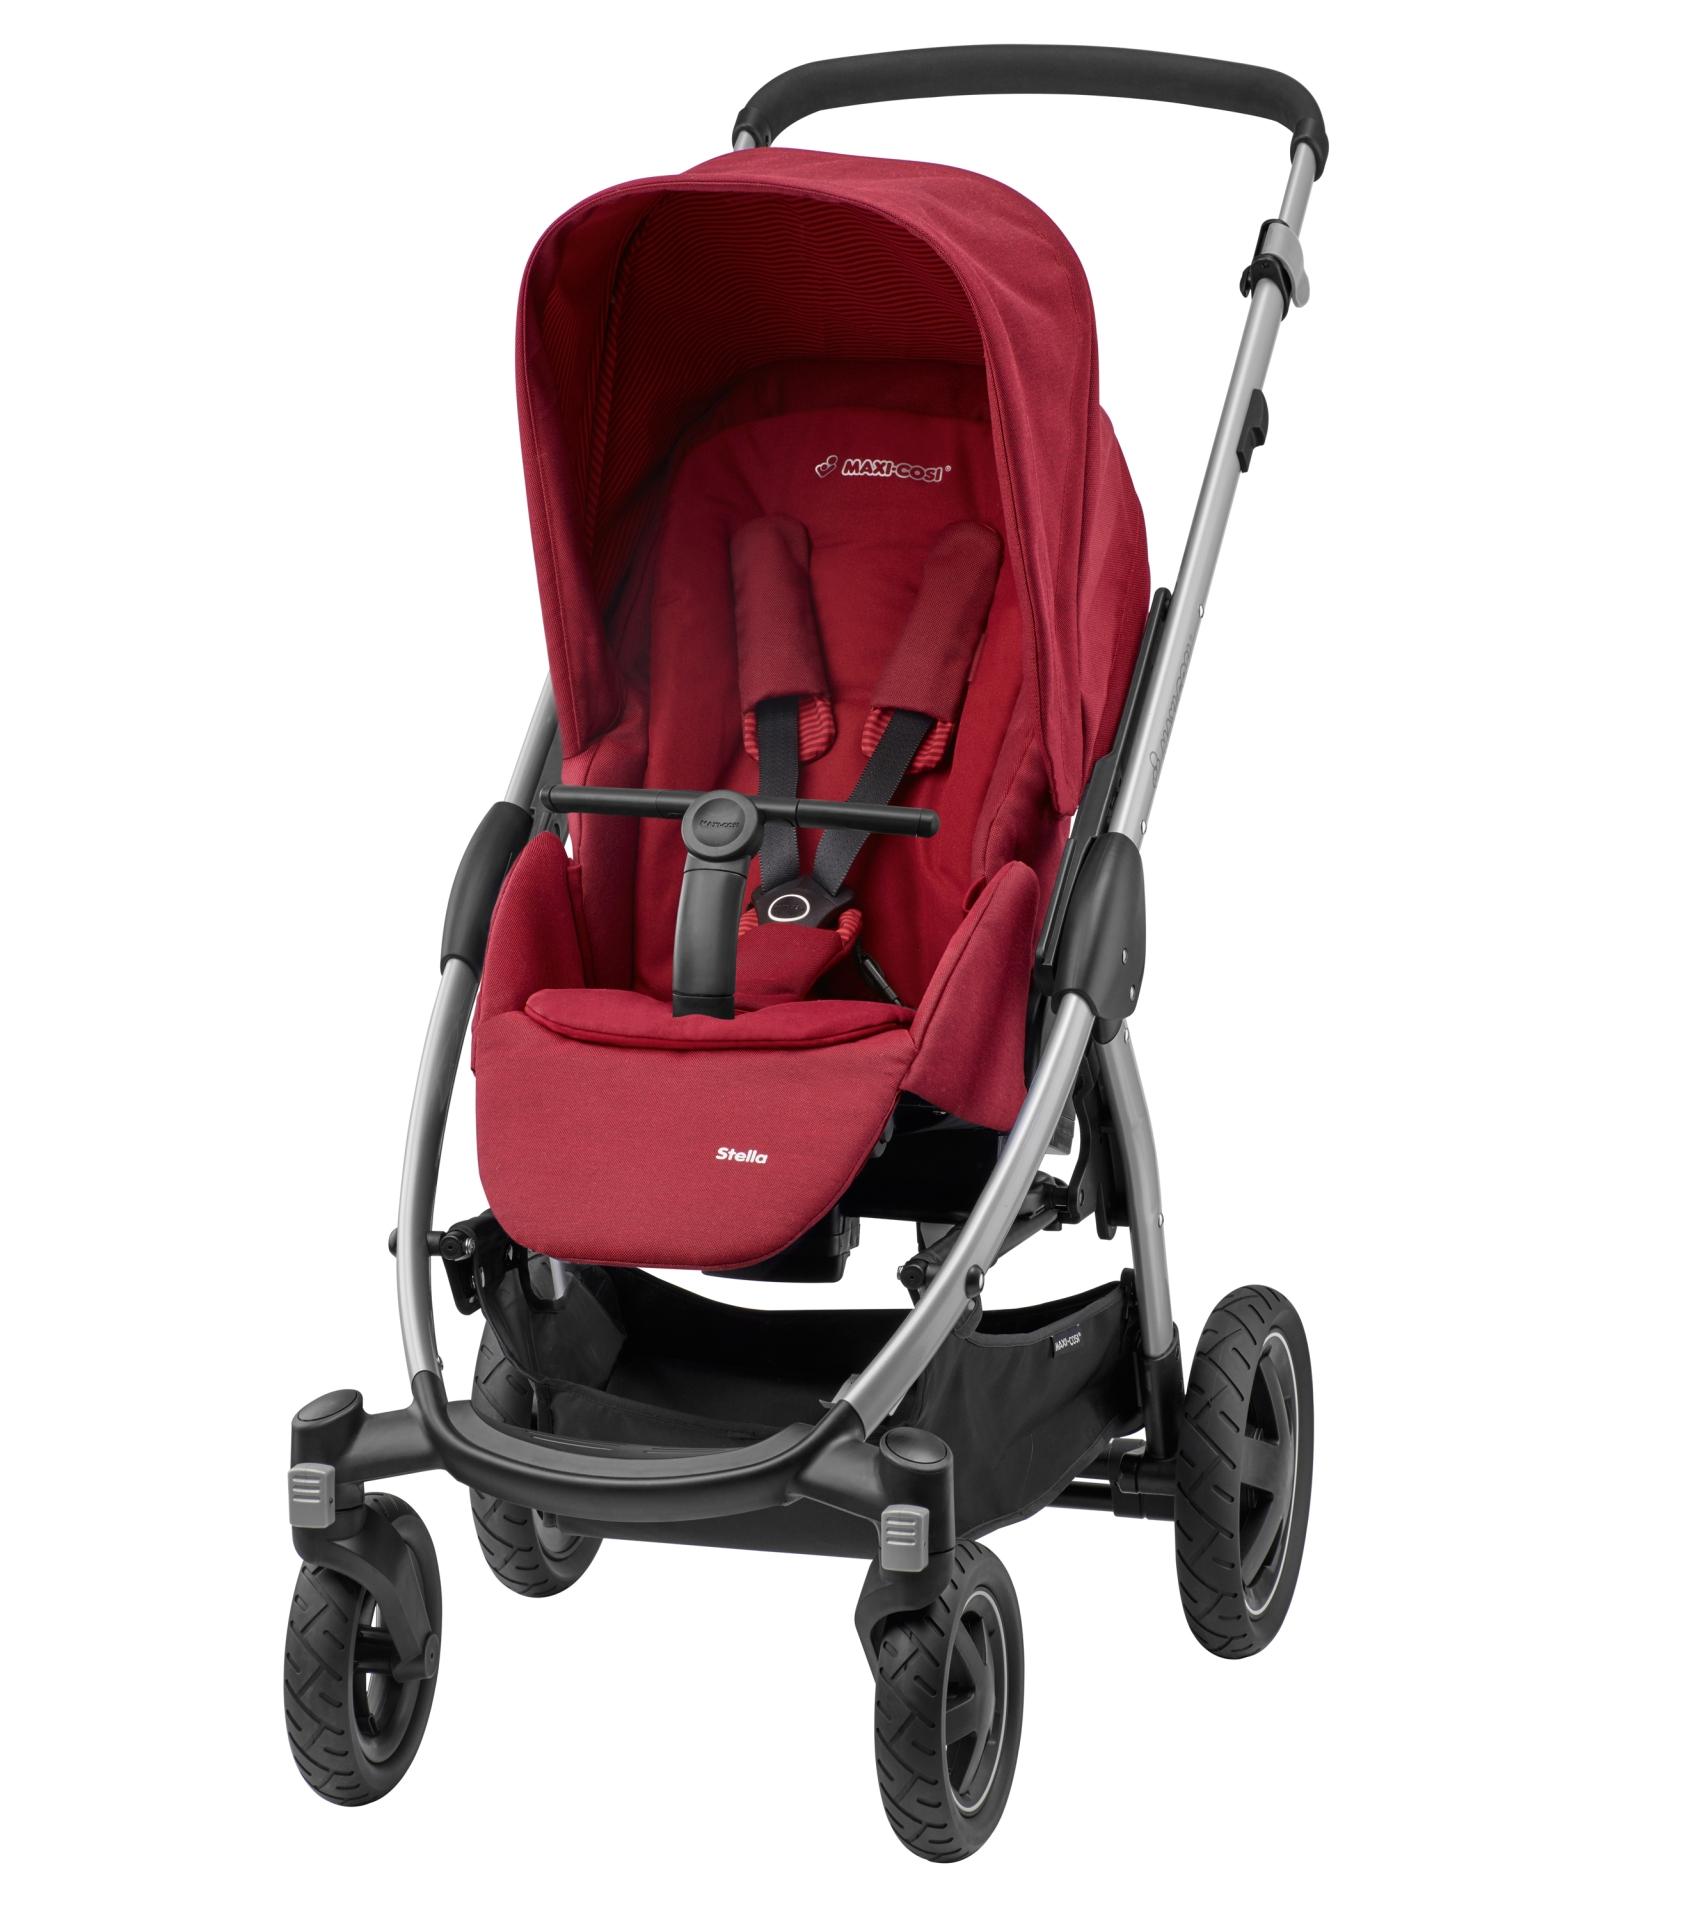 maxi cosi stroller stella 2017 robin red buy at kidsroom. Black Bedroom Furniture Sets. Home Design Ideas